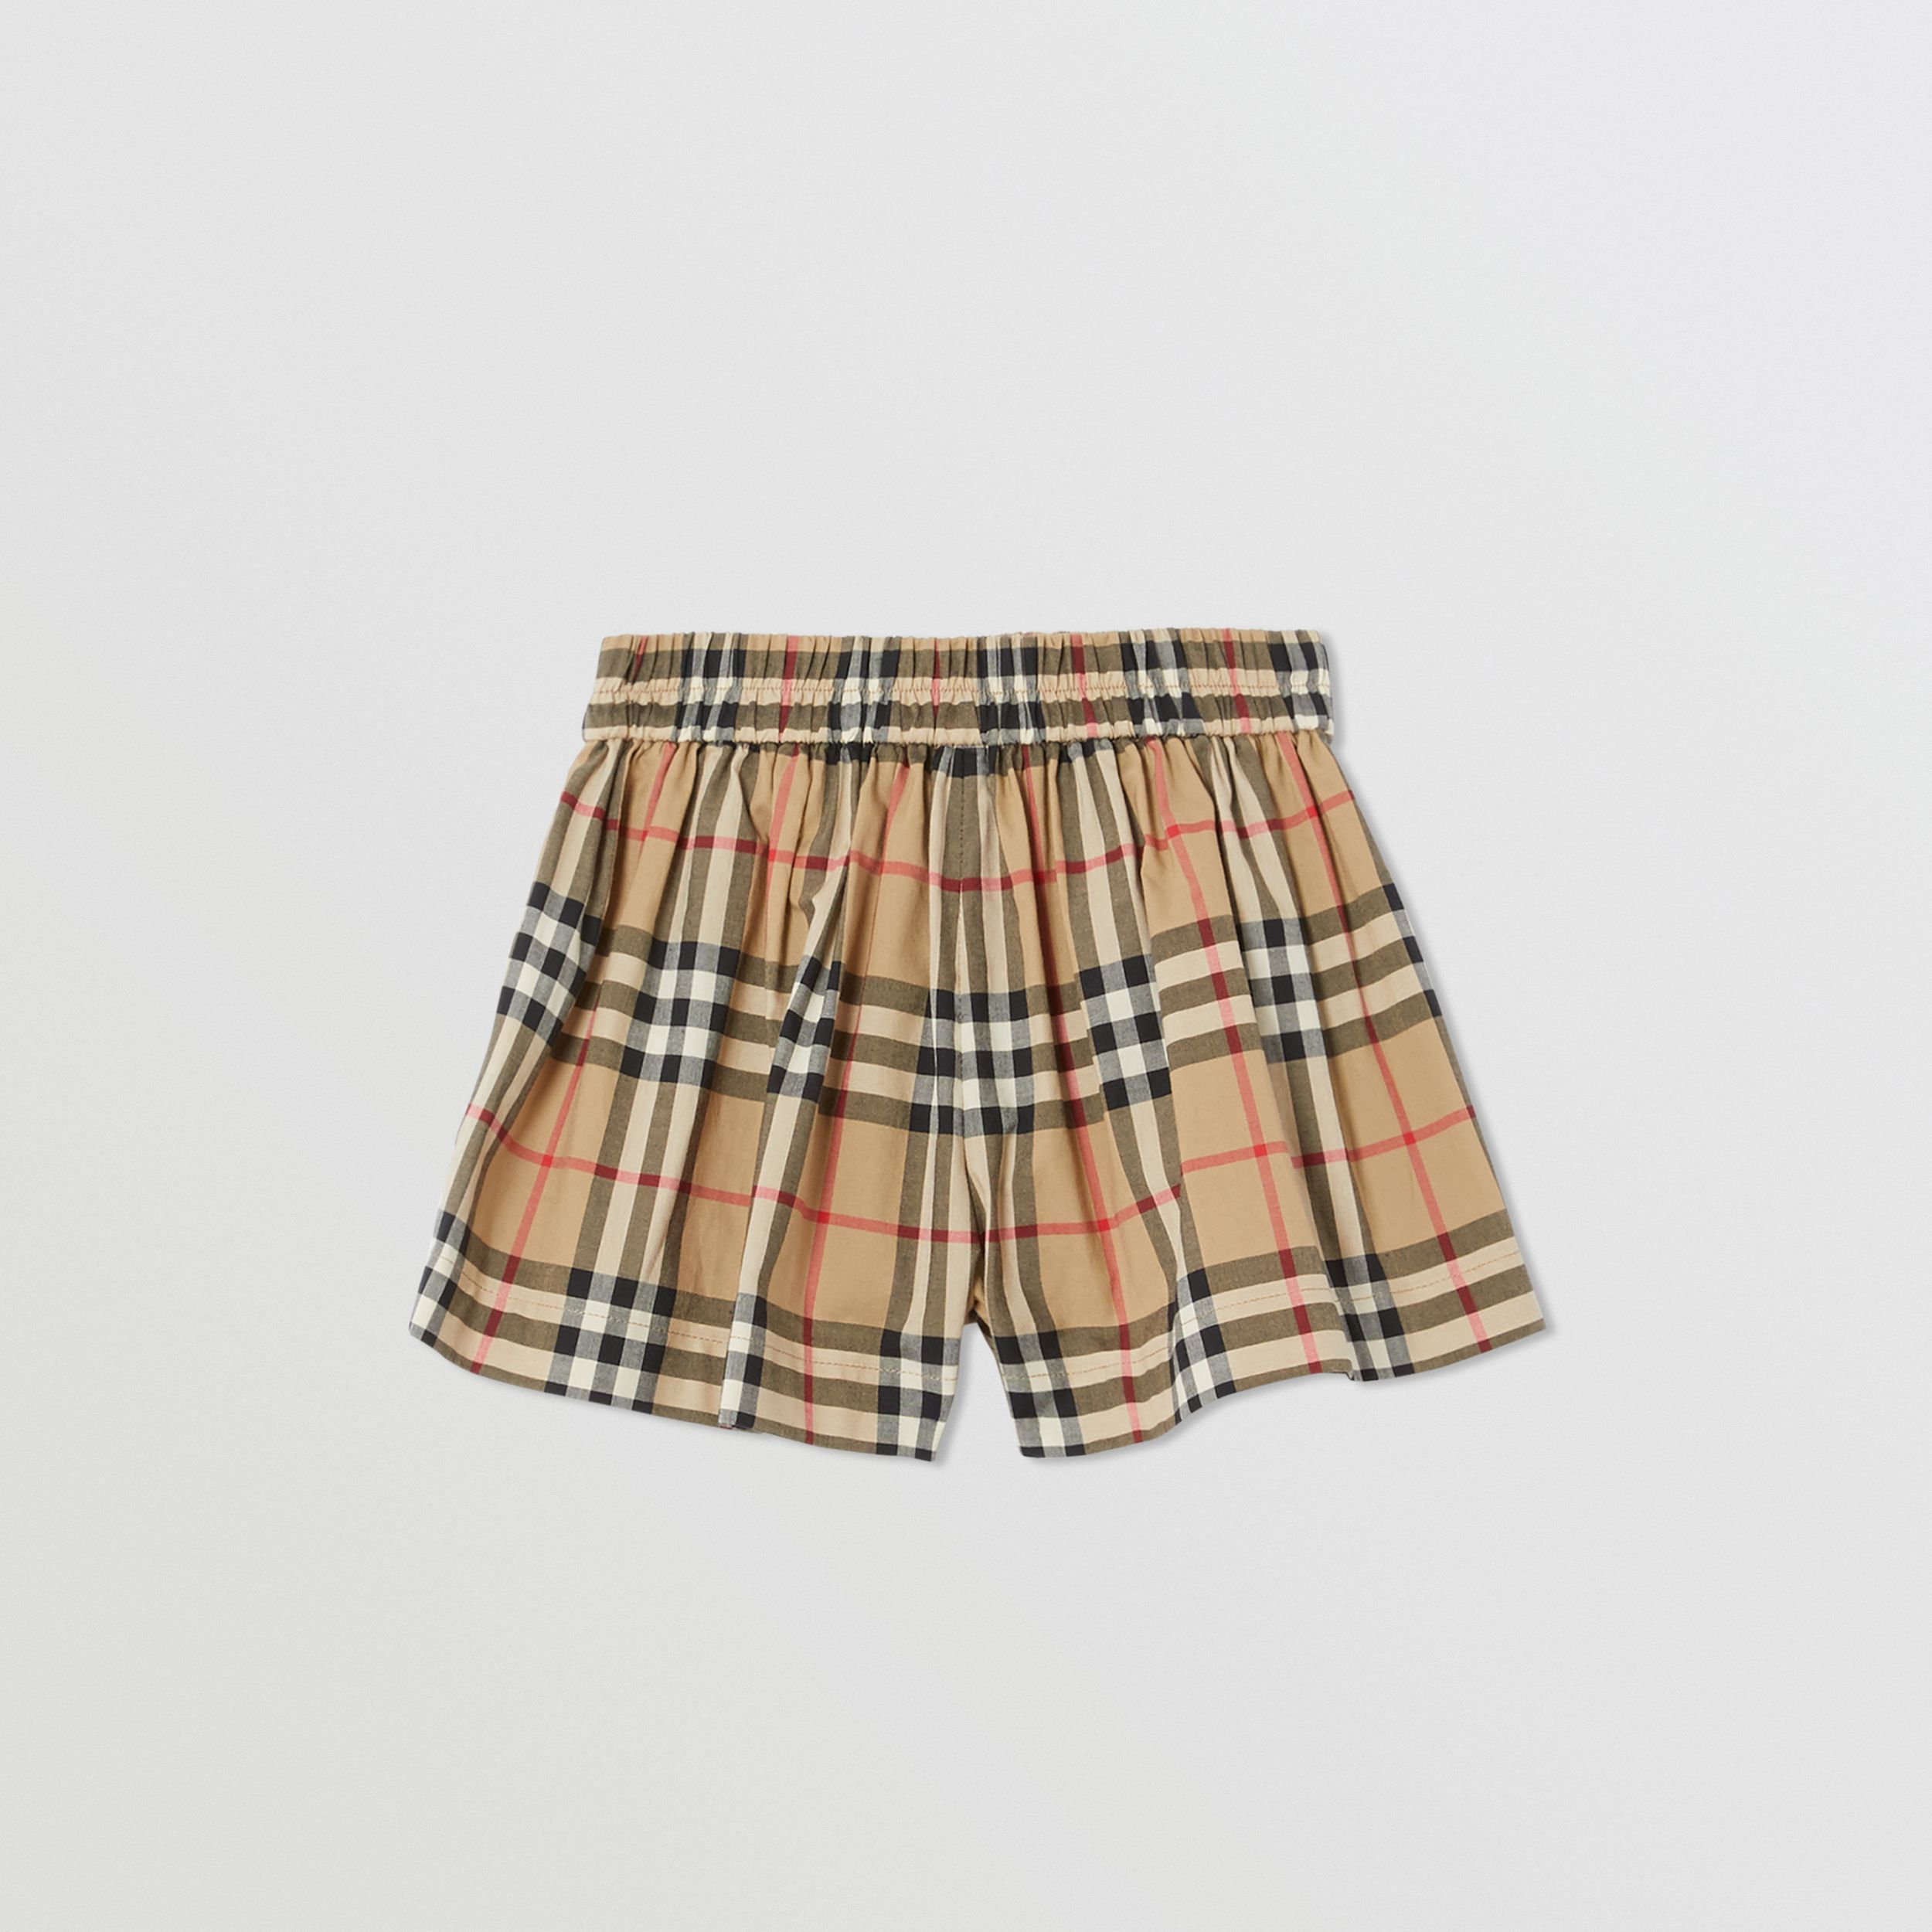 Vintage Check Gathered Cotton Shorts in Archive Beige - Children | Burberry - 4